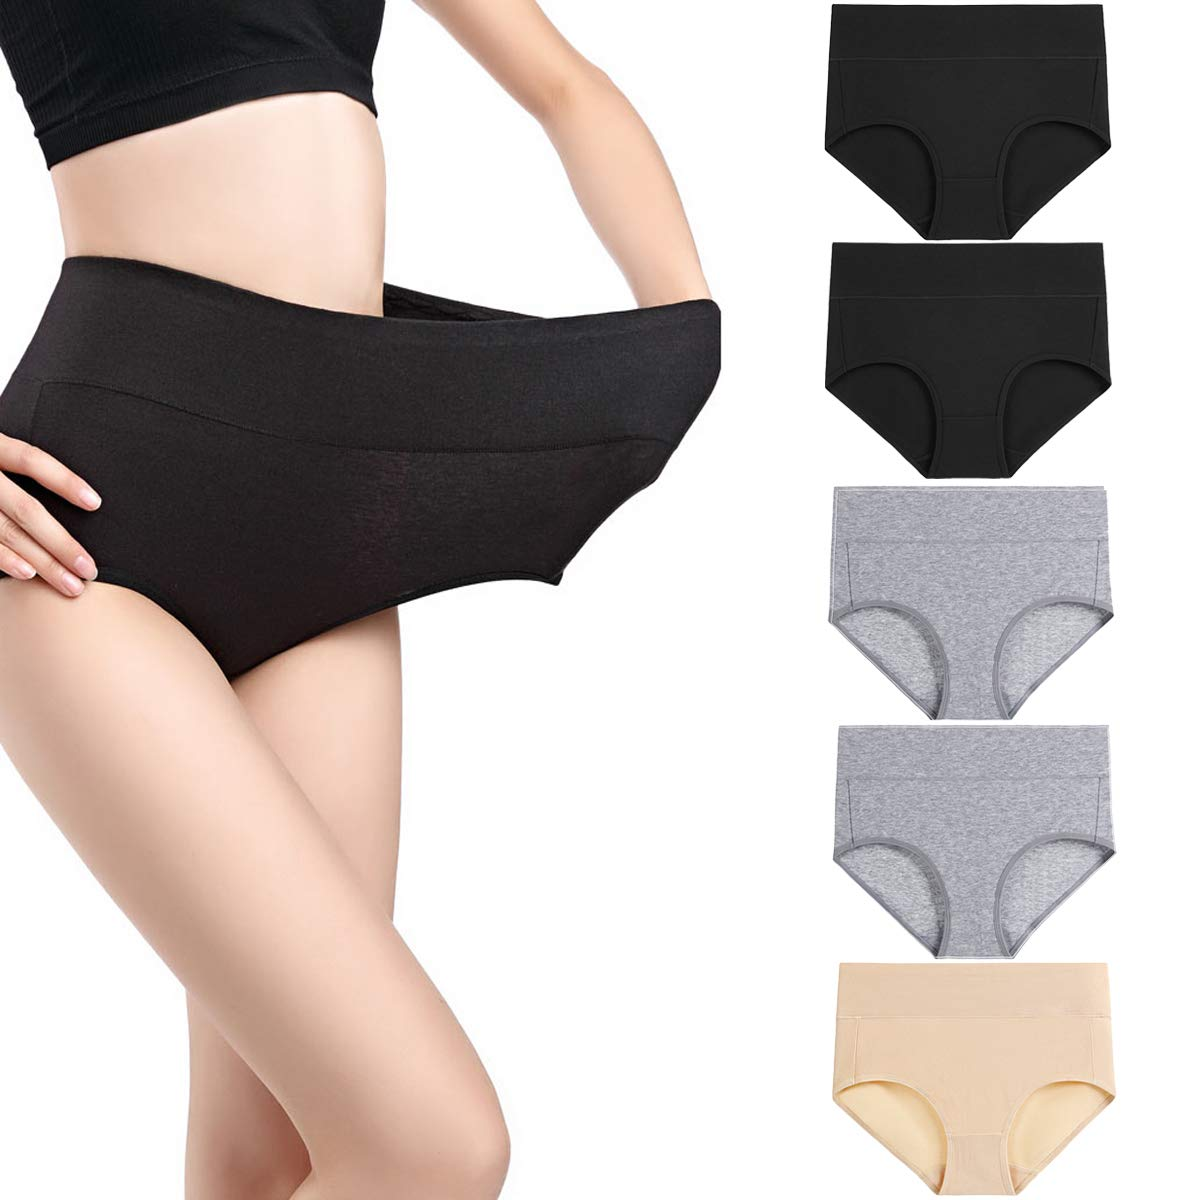 Size 4 wirarpa Womens 5 Pack Cotton Underwear High Waisted Full Coverage Brief Panties Ladies Comfortable Underpants Black Grey Beige